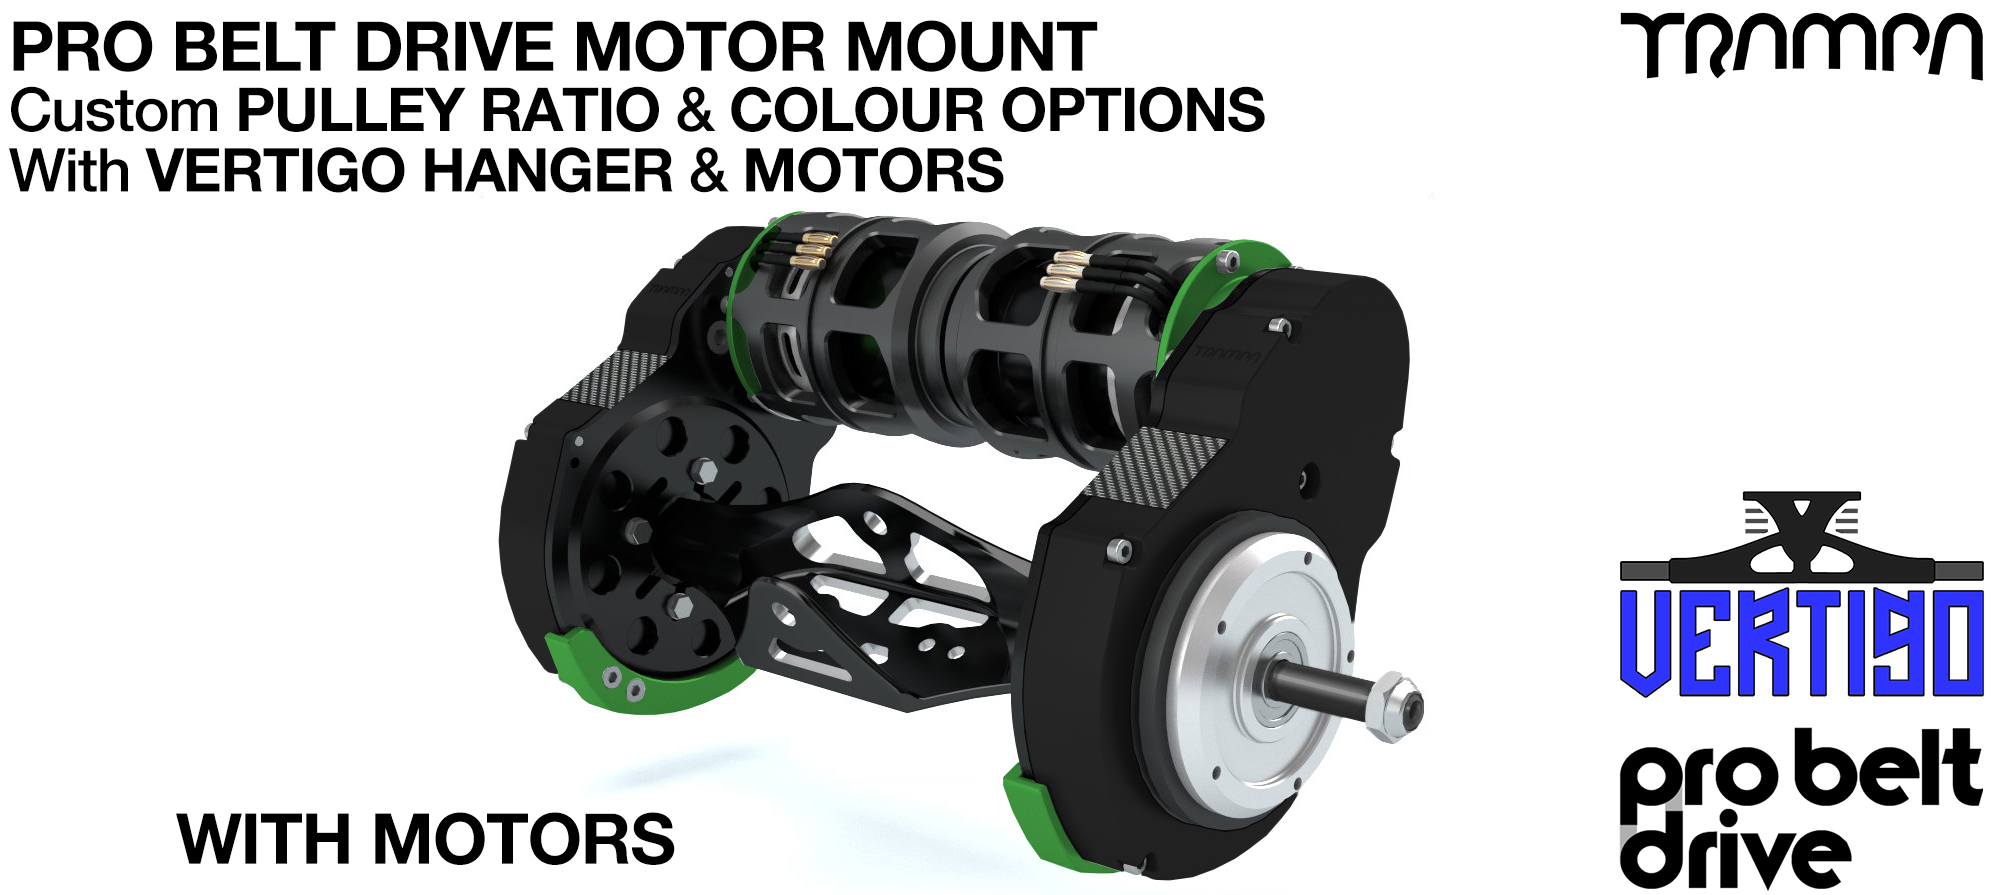 Mountainboard PRO Belt Drive TWIN Motor Mounst, Motors & Precision VERTIGO Hanger